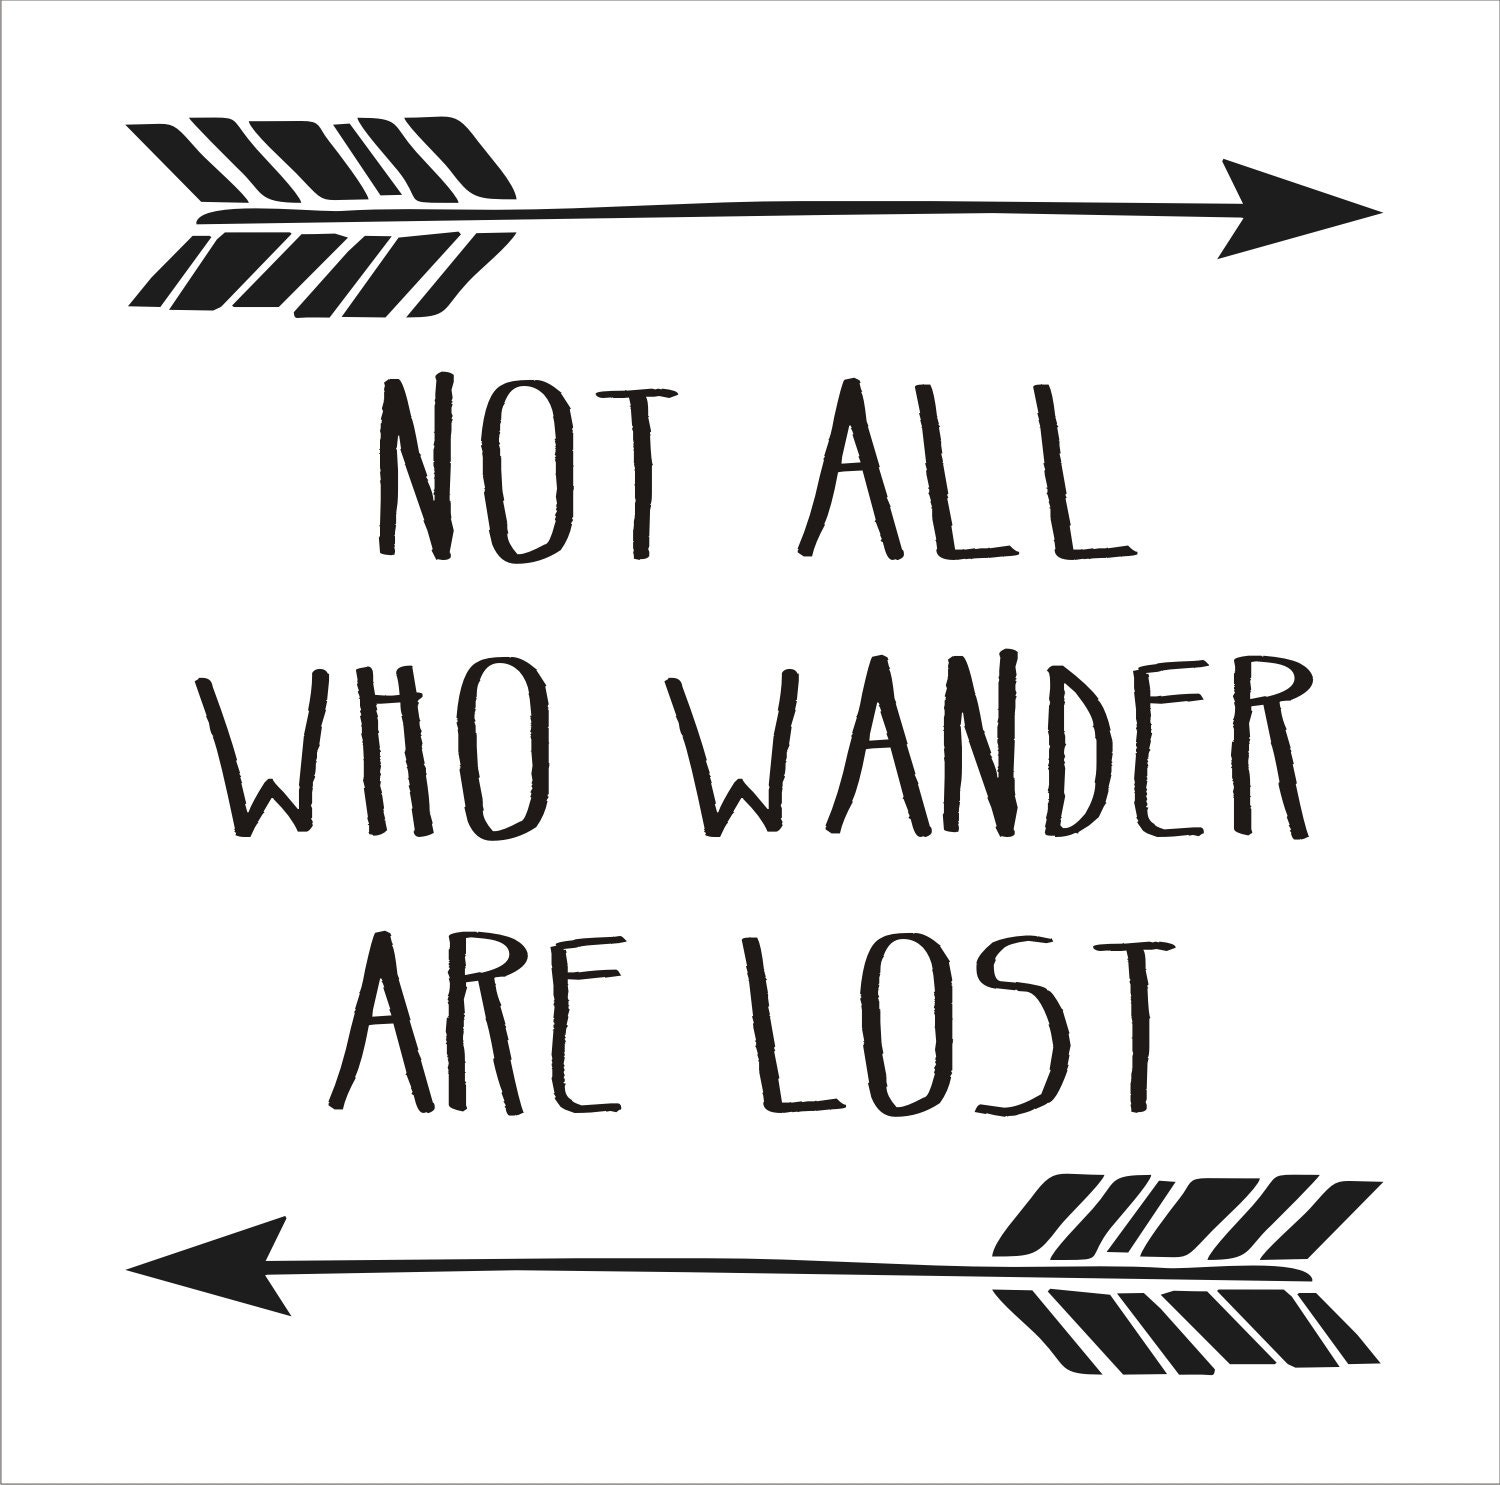 Not All Who Wander Are Lost - SIGN Reusable STENCIL-- 6 ...